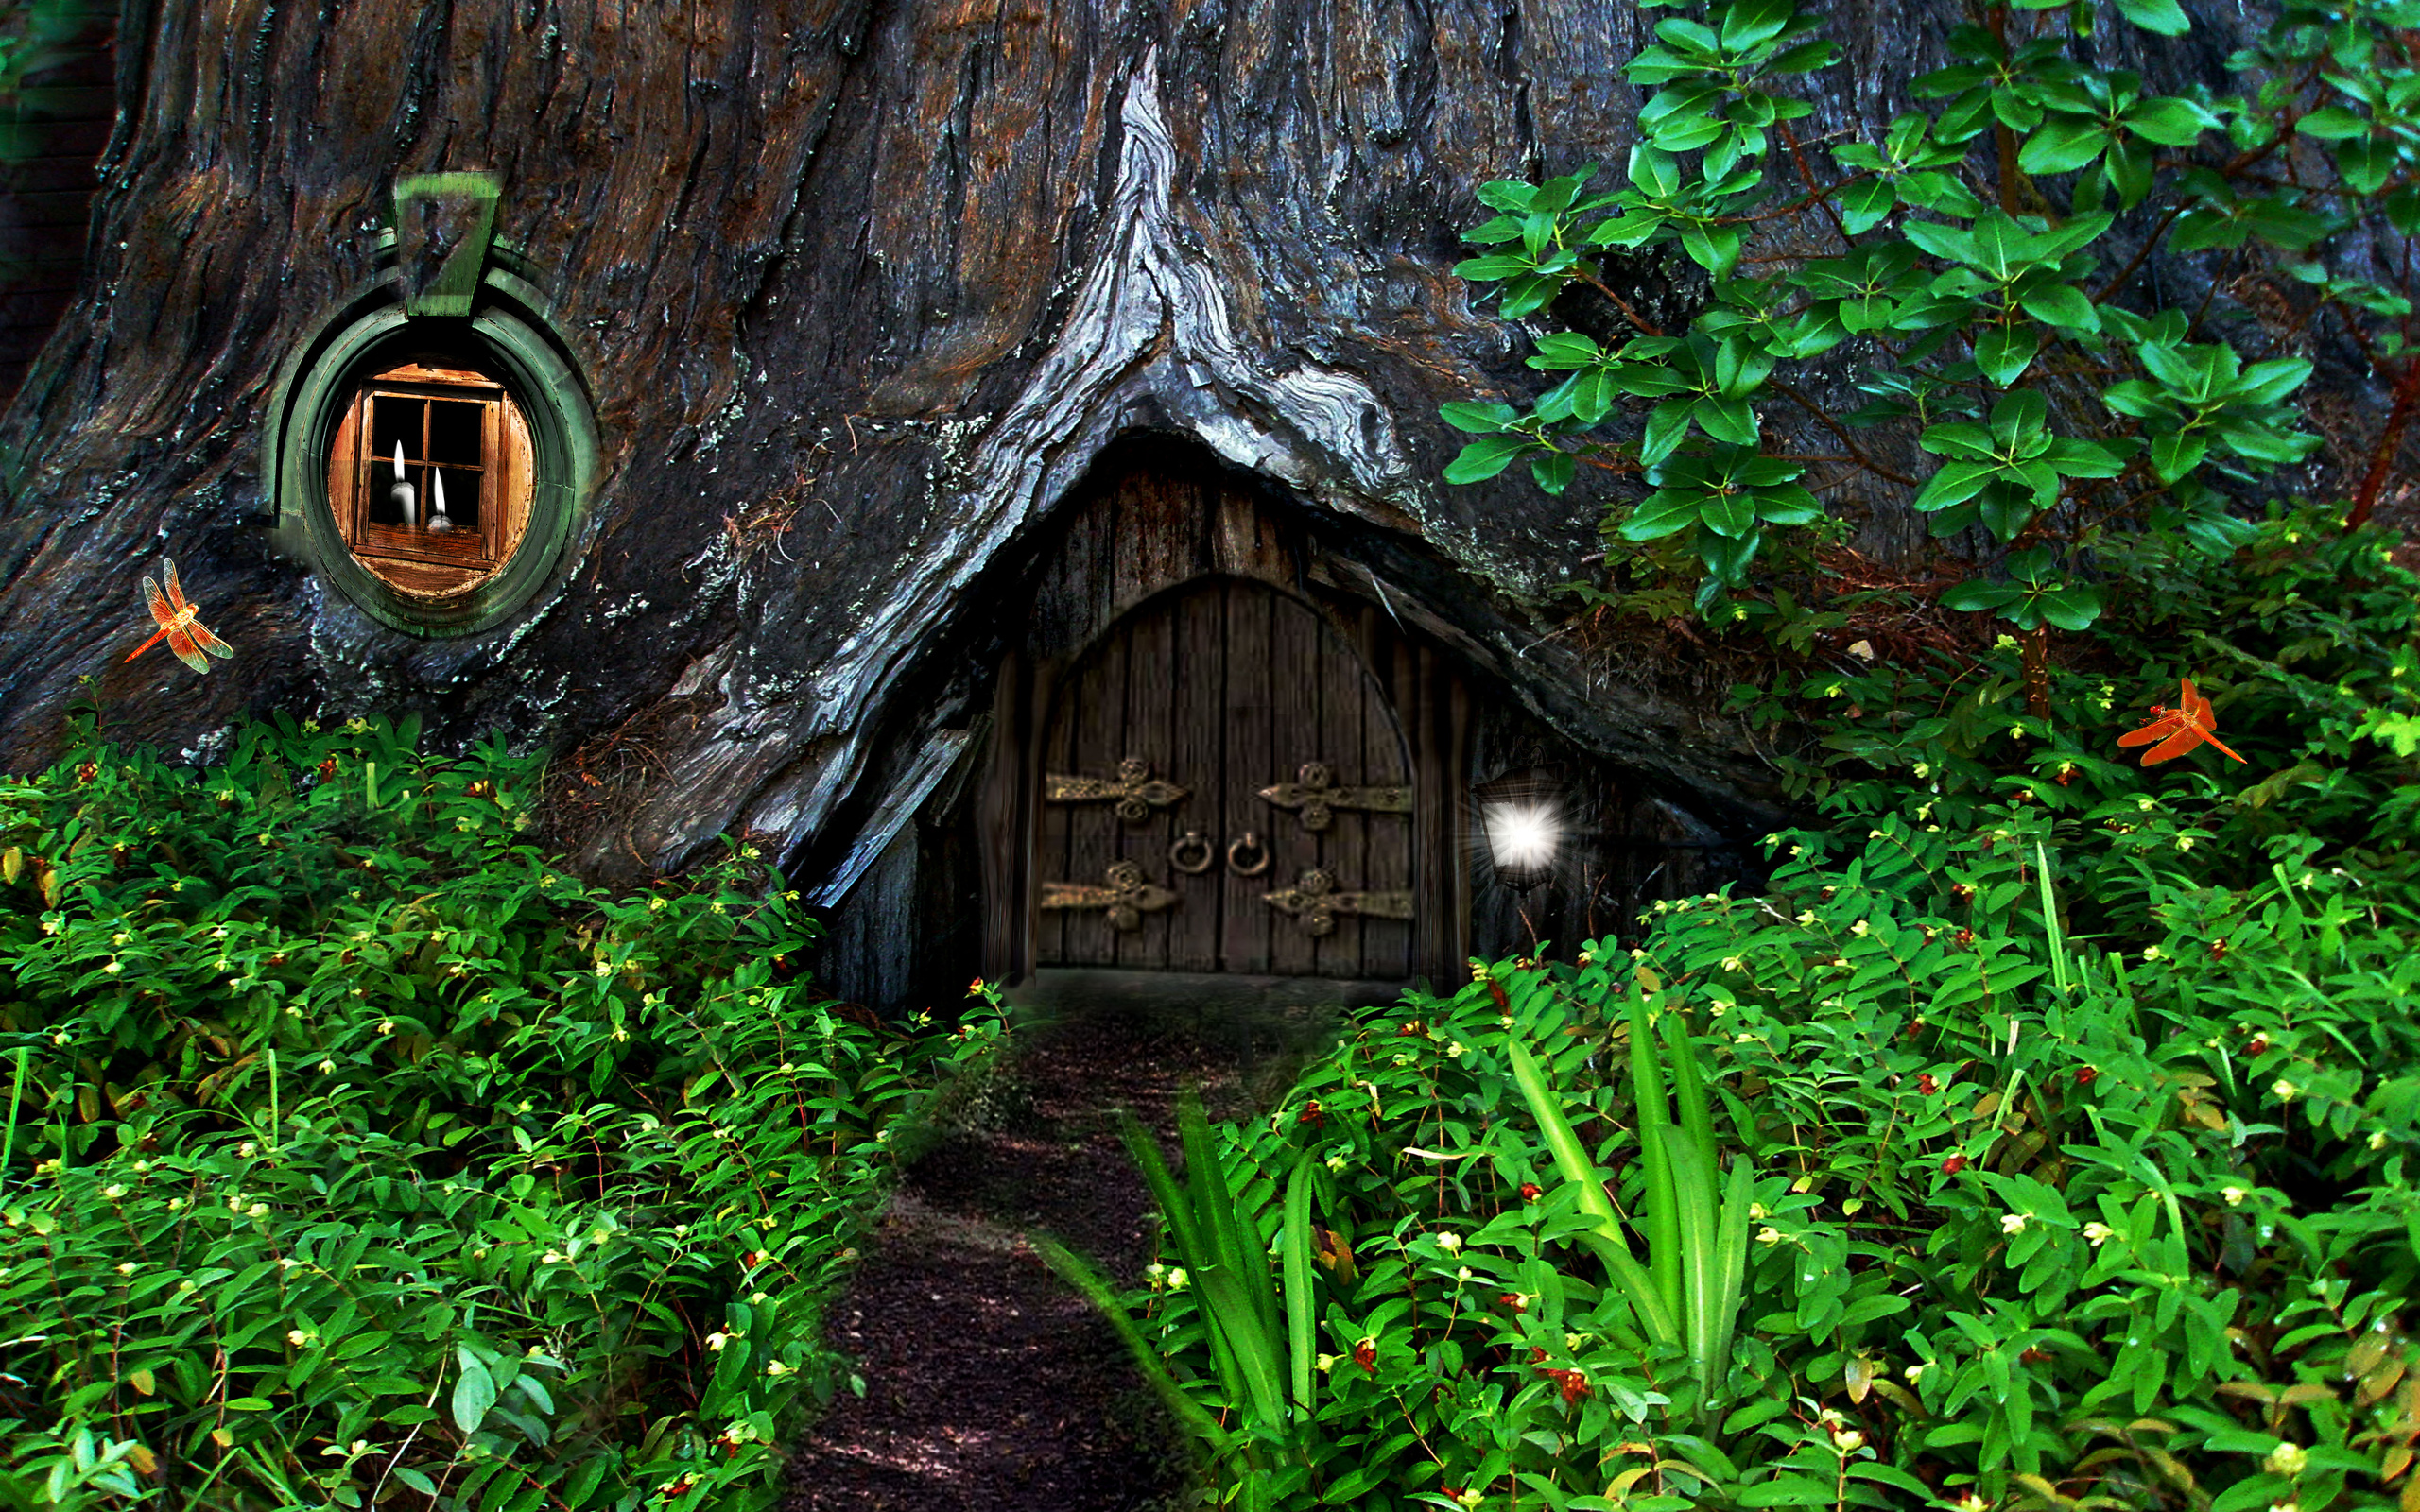 Hobbit fantasy forest trees house home wallpaper 2560x1600 91214 2560x1600